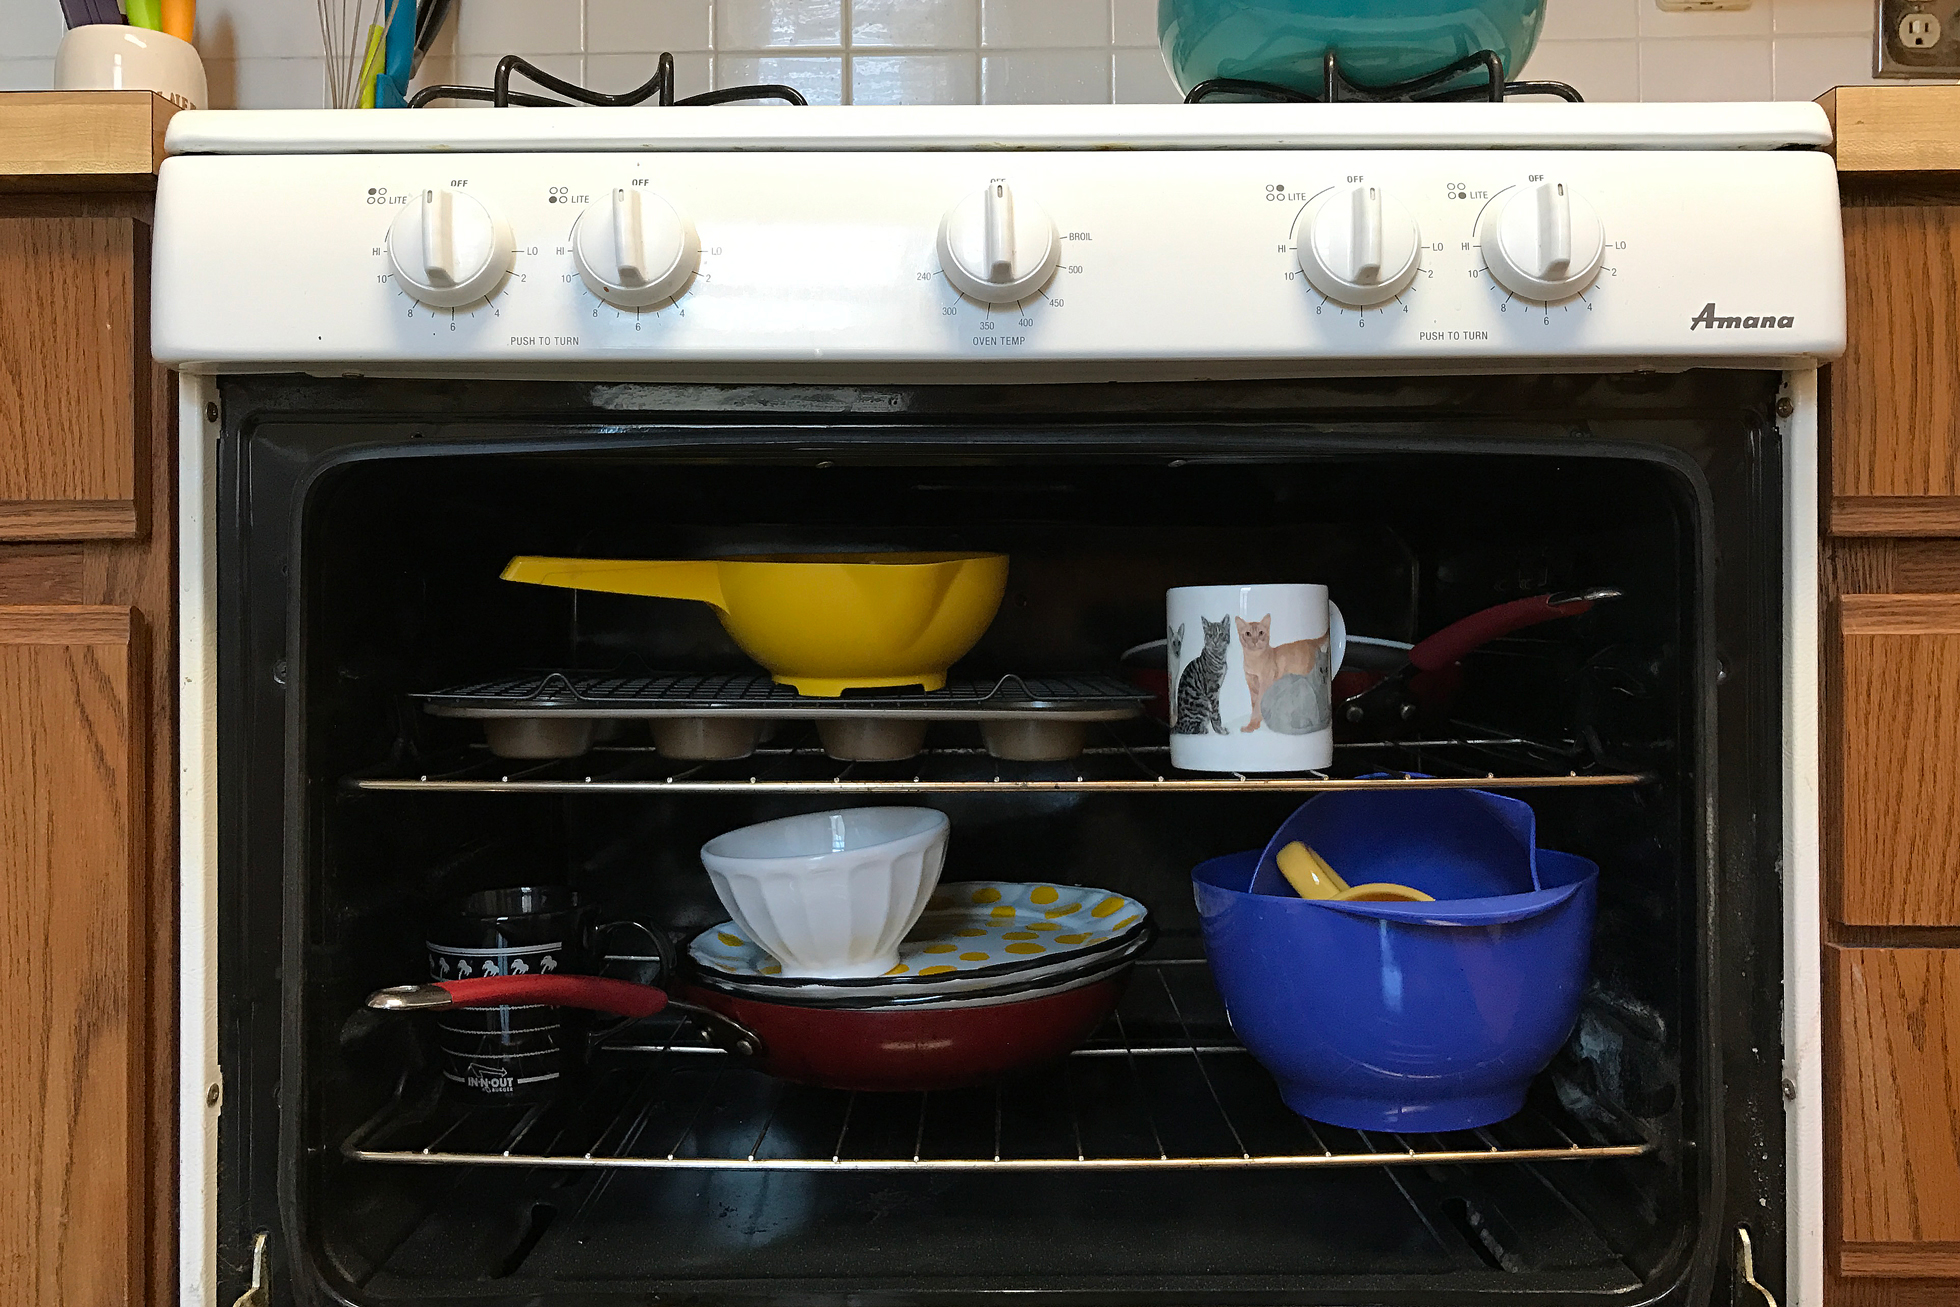 Dishes, pans, and mugs in a white oven that is open